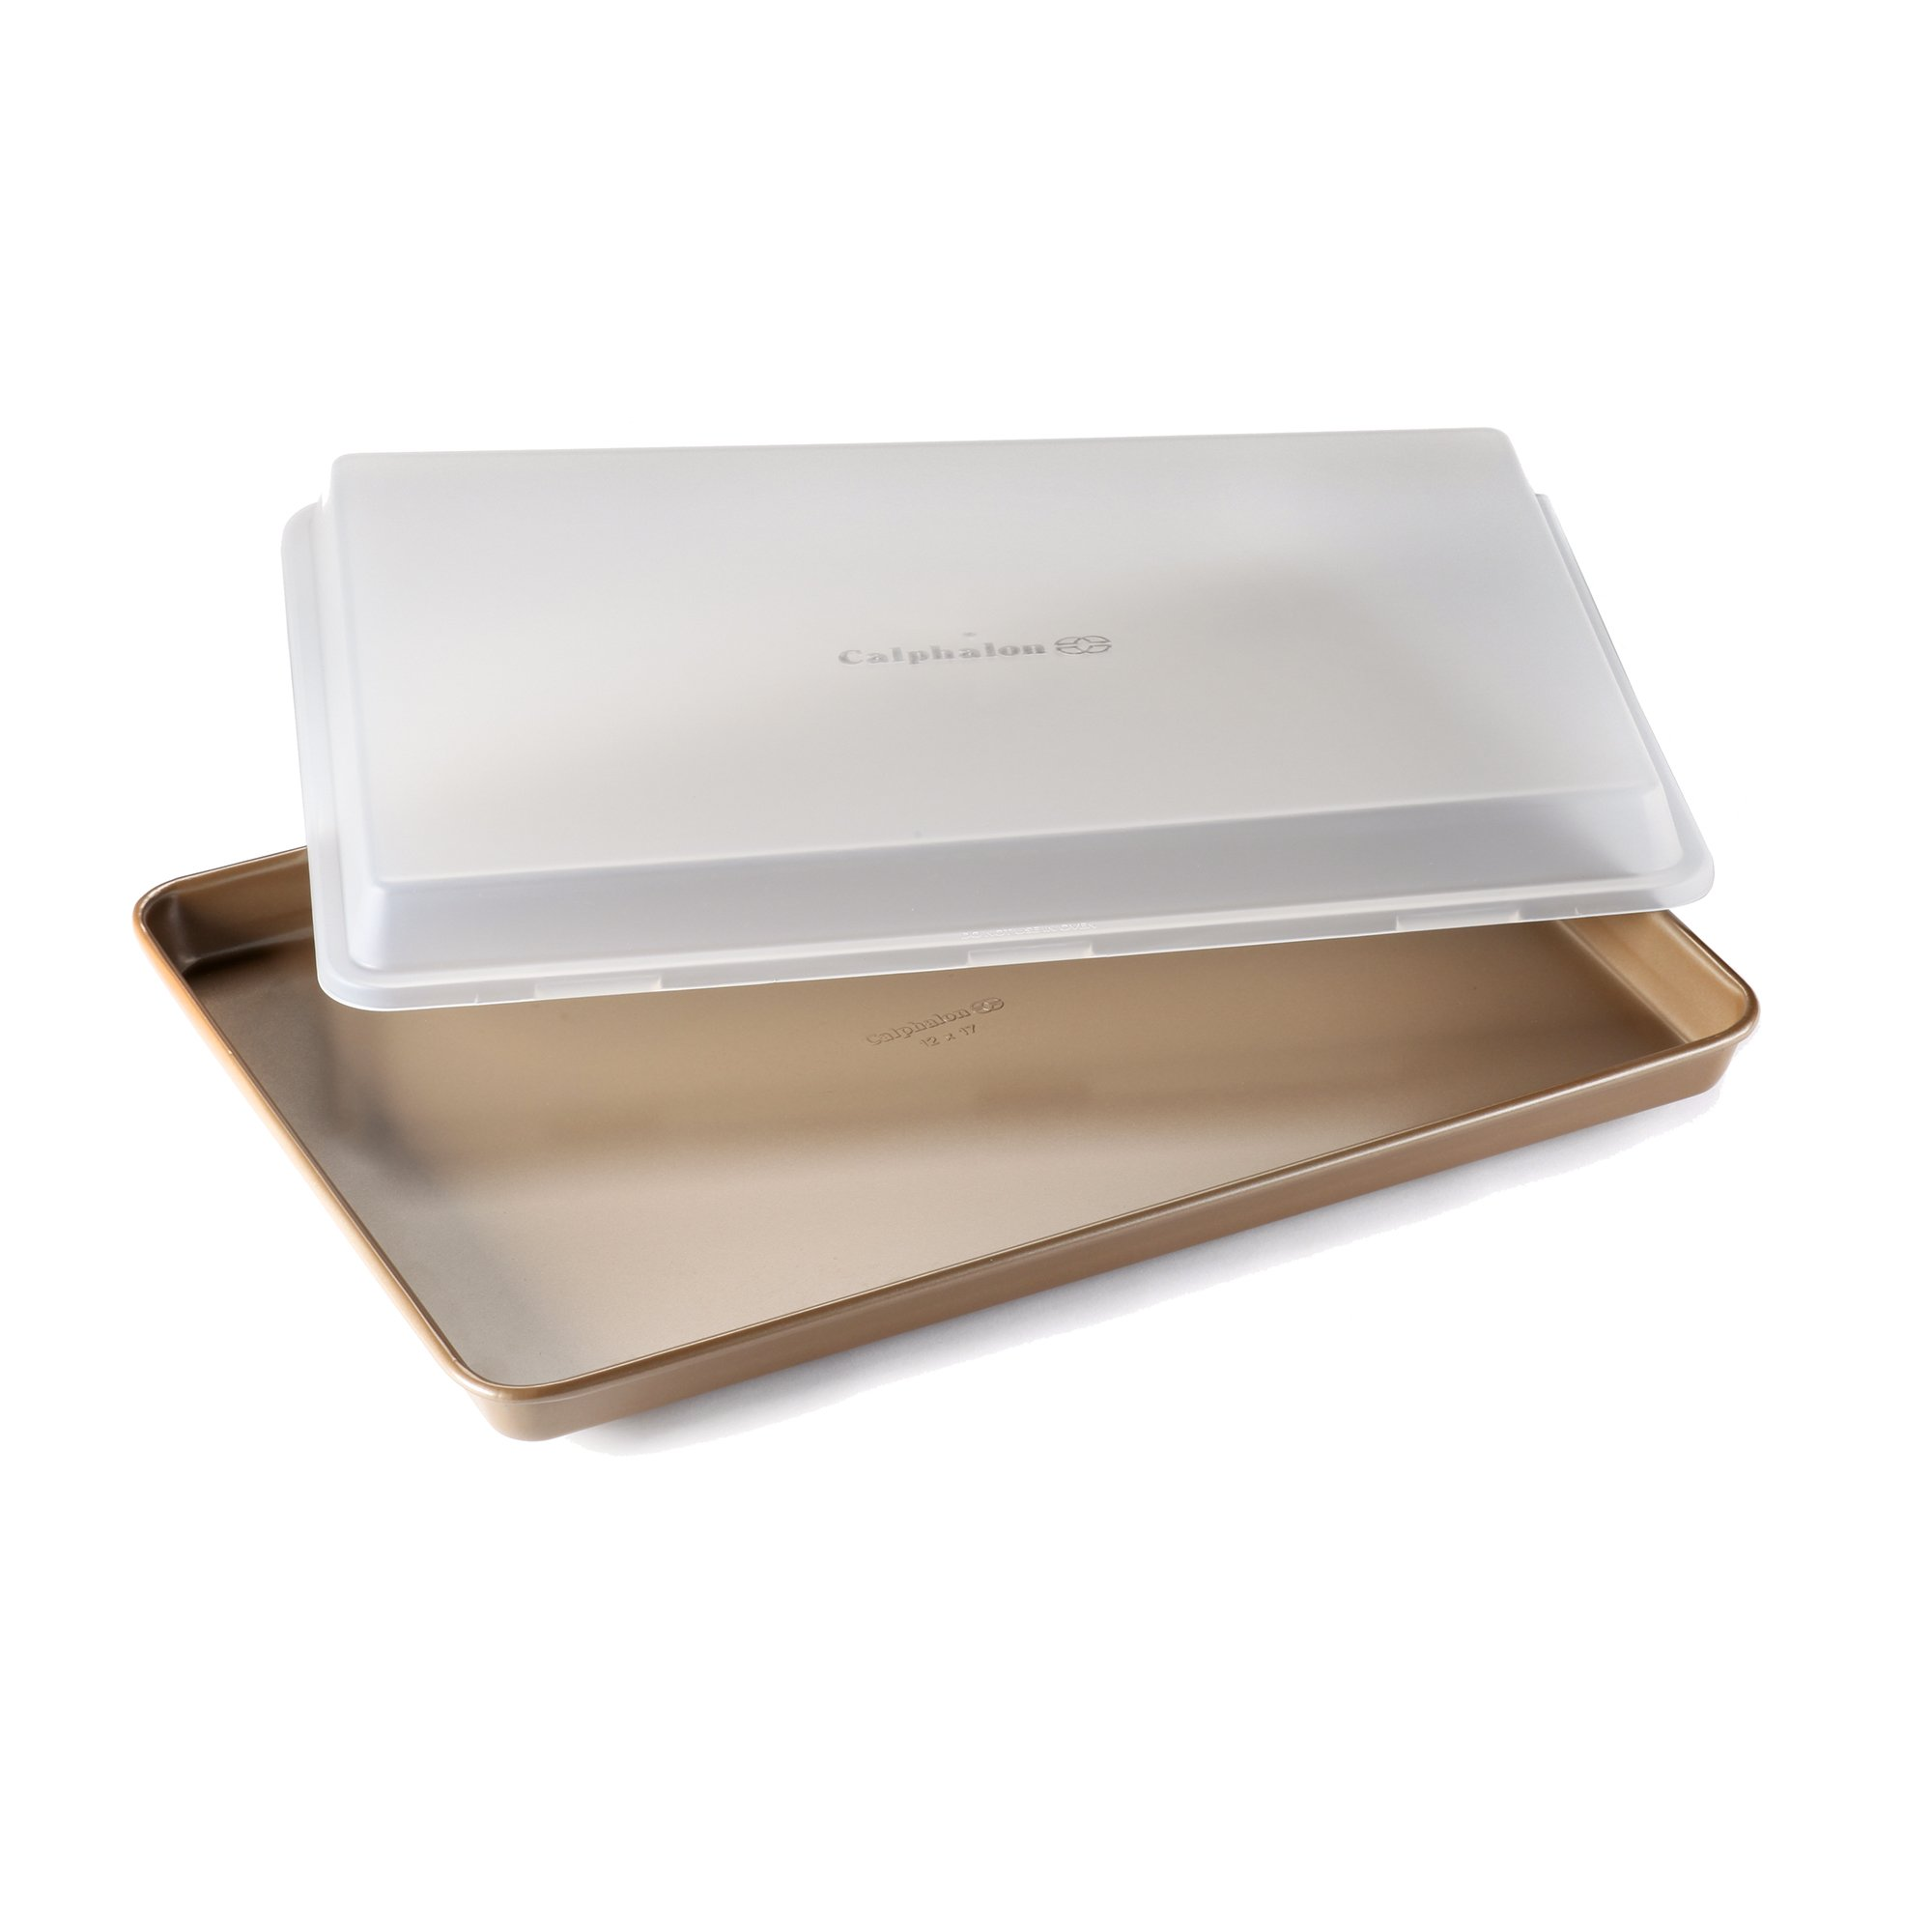 Calphalon Nonstick Bakeware 12 x 17-Inch Baking Sheet with Cover, Toffee